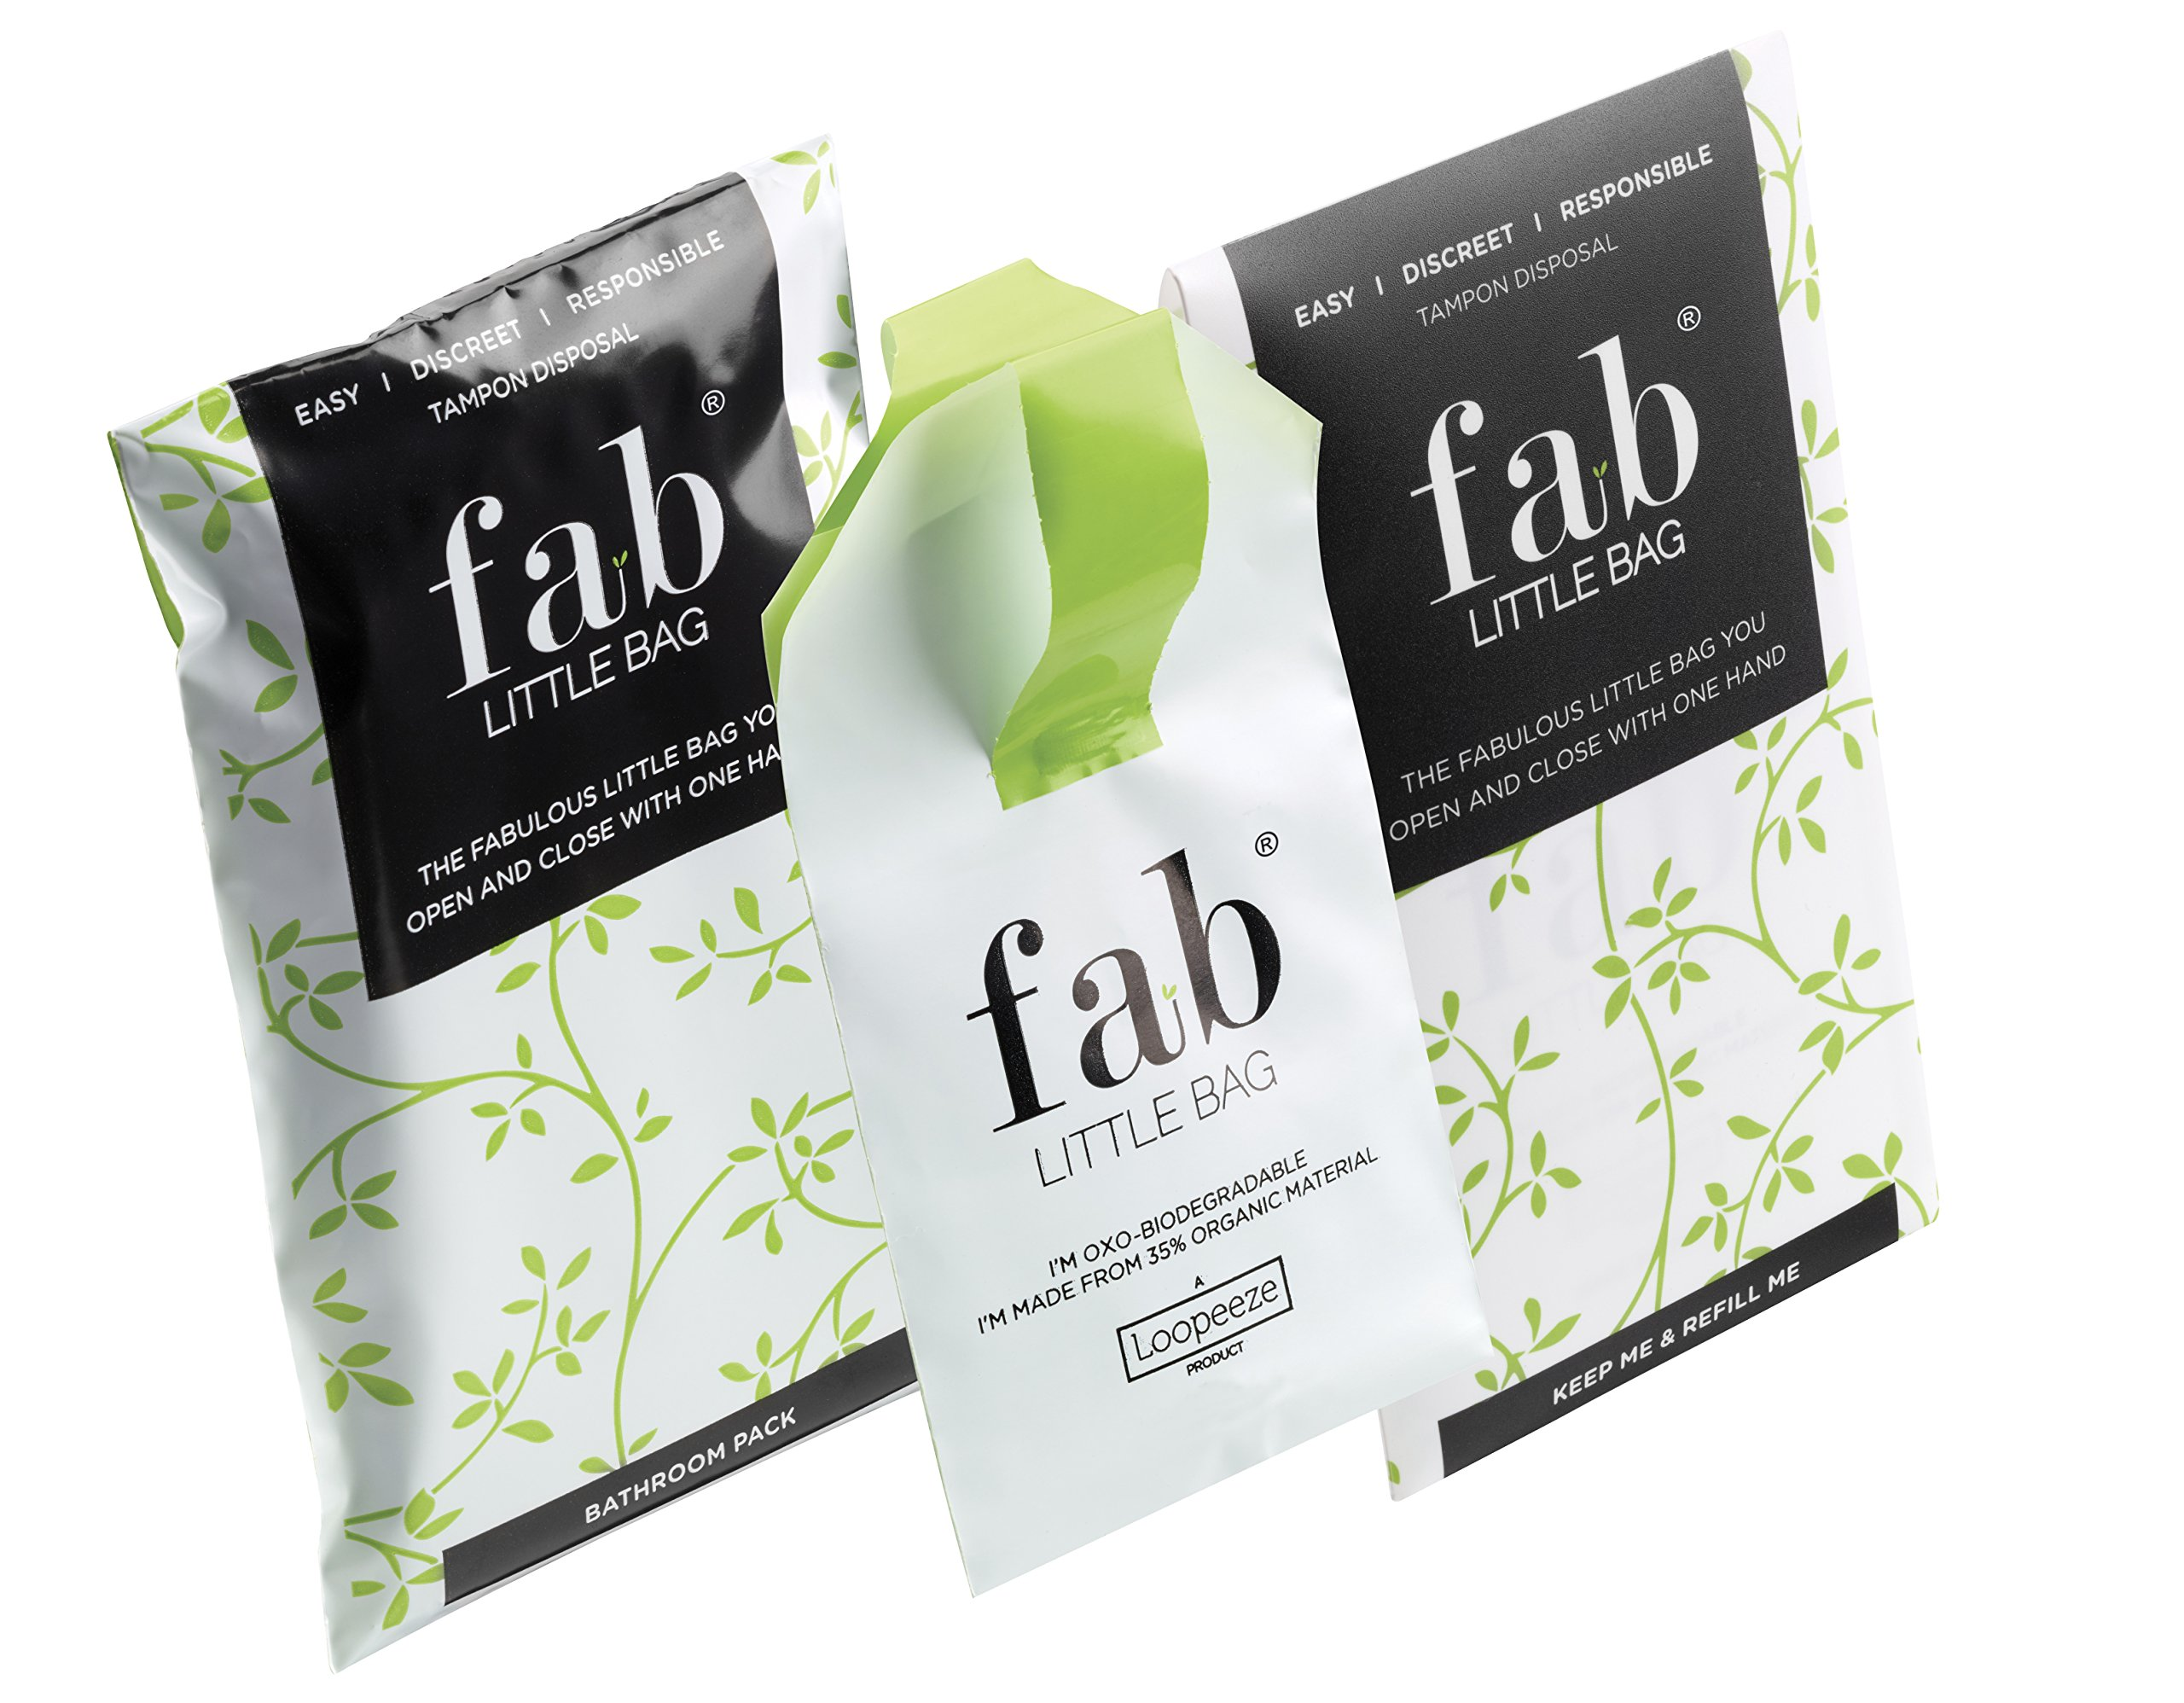 Fab Little Bag Sealable One Handed Tampon Disposal Bag 26g (Pack of 12) by FabLittleBag (Image #1)